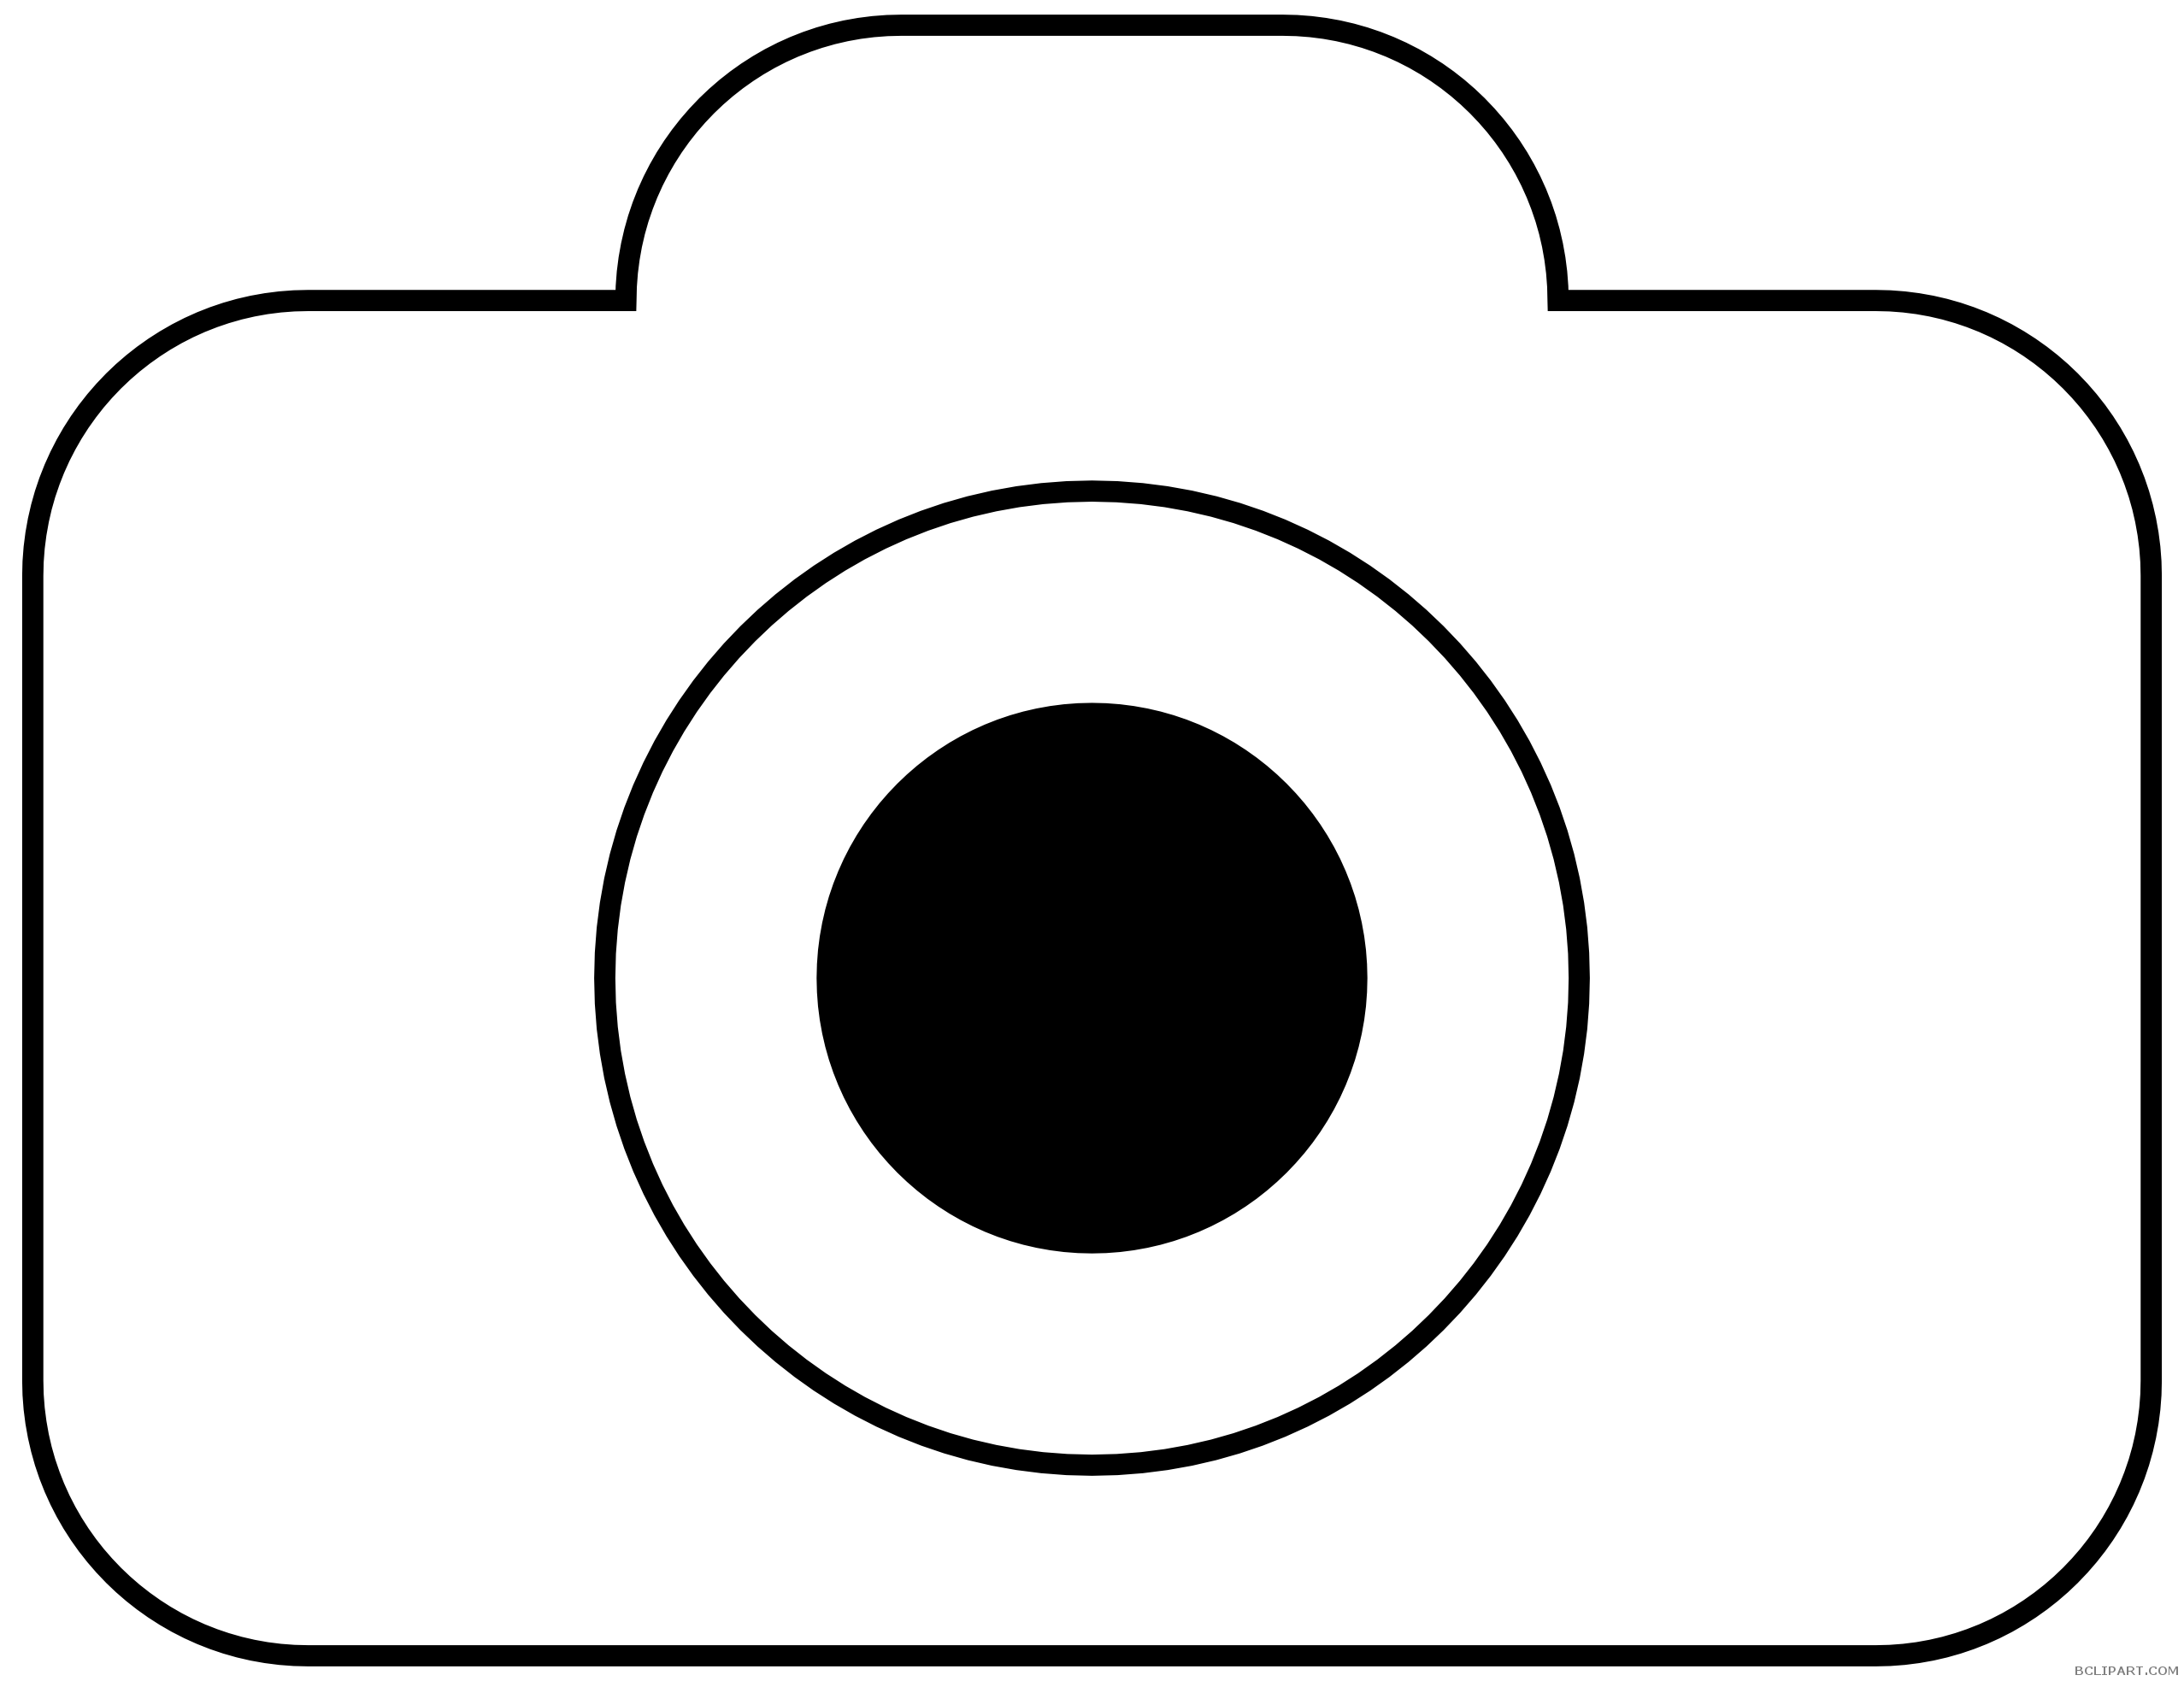 Bclipart tools free images. Clipart camera outline